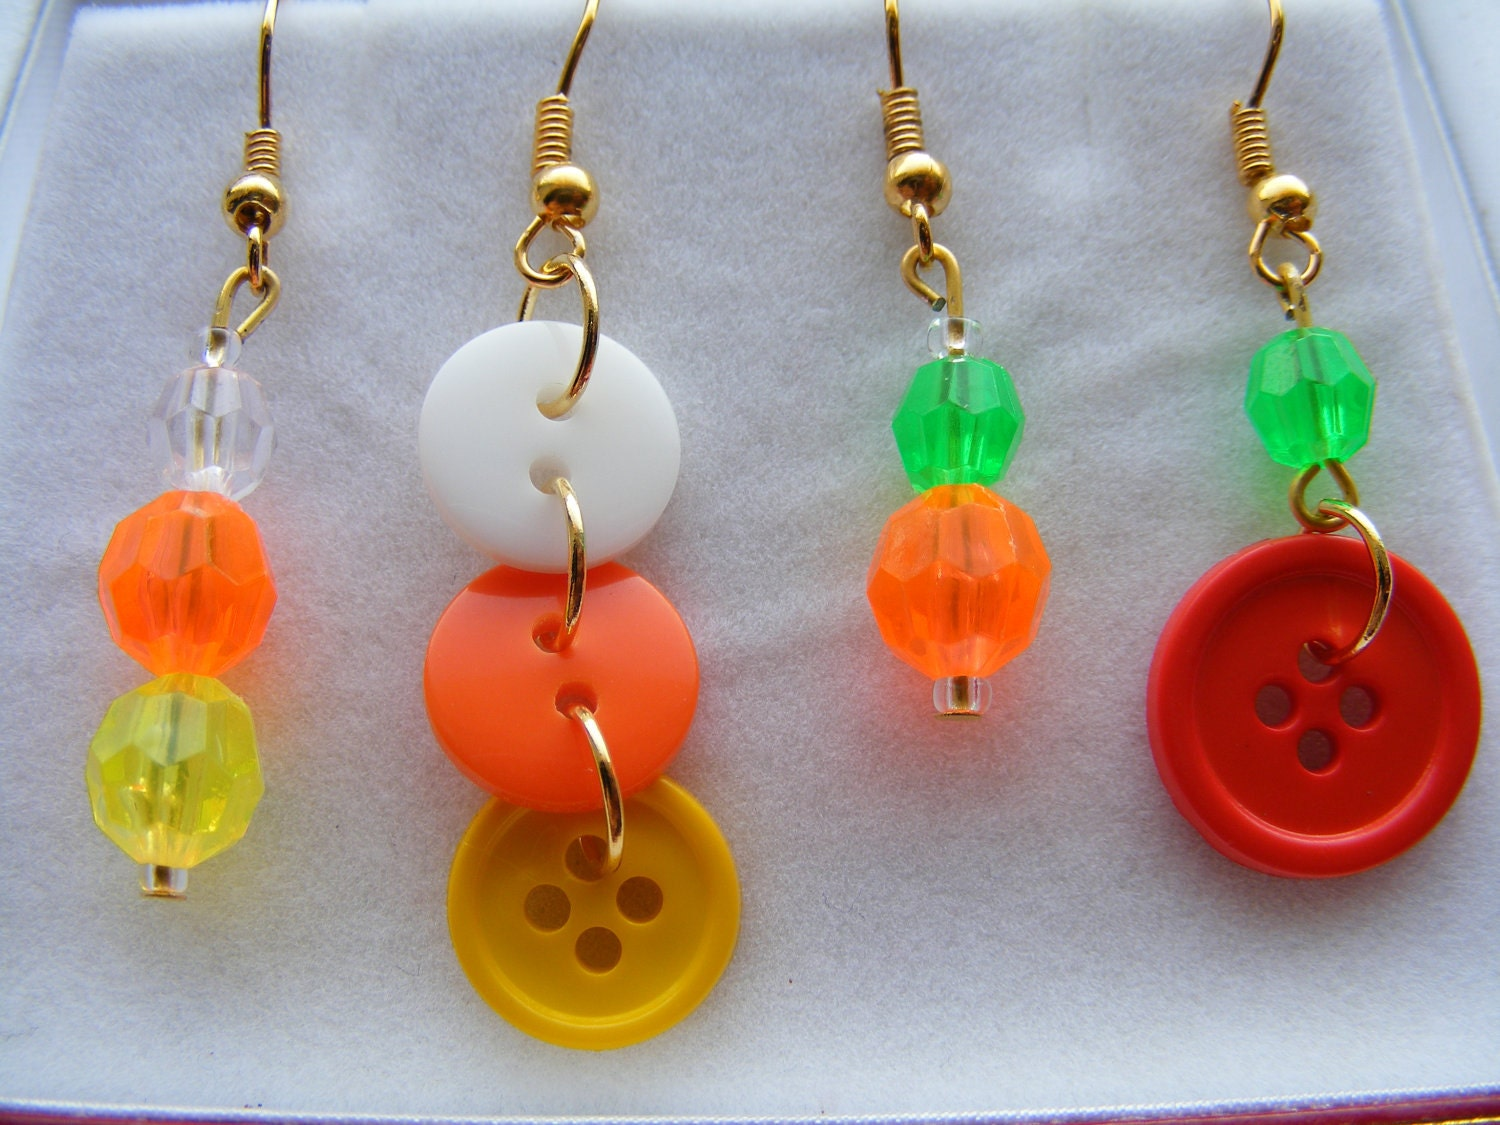 Earrings candy corns & pumpkins